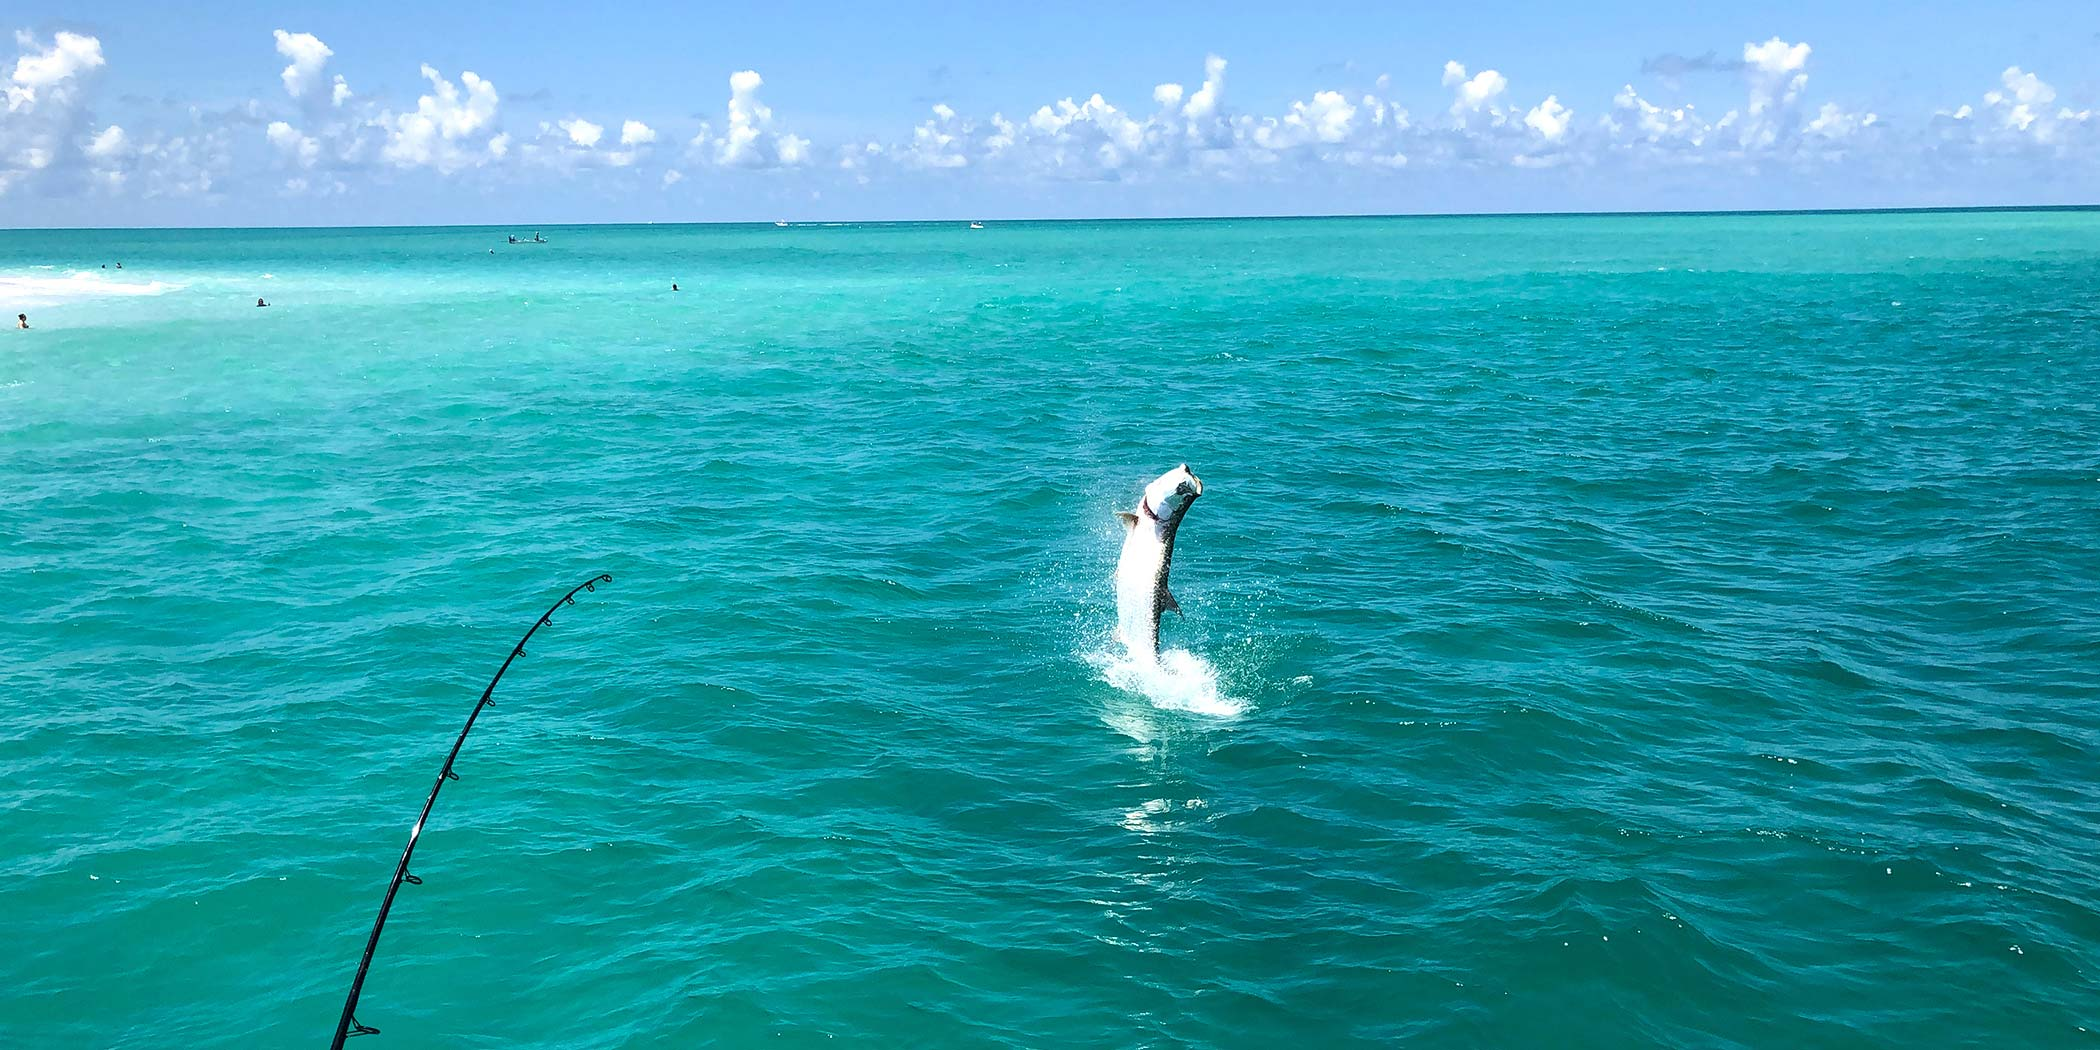 Summer tarpon fishing can include some thrilling acrobatics on the part of the fish!